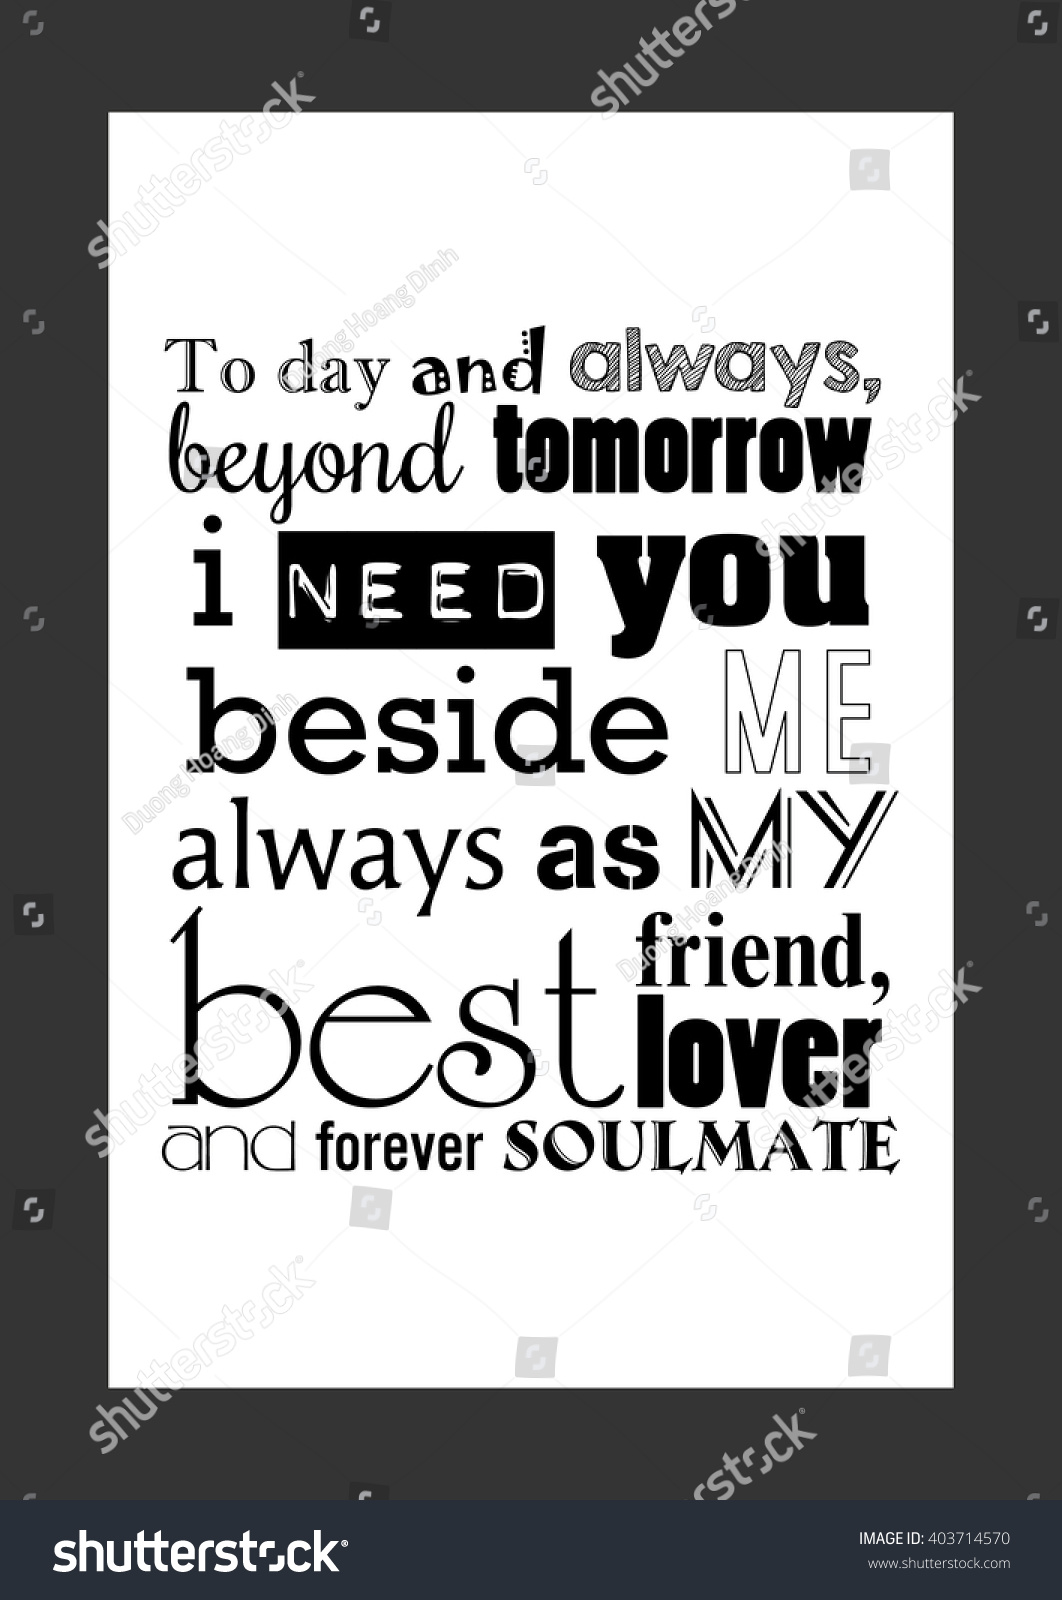 Best Friend Love Quotes Love Quote Today Always Beyond Tomorrow Stock Vector 403714570